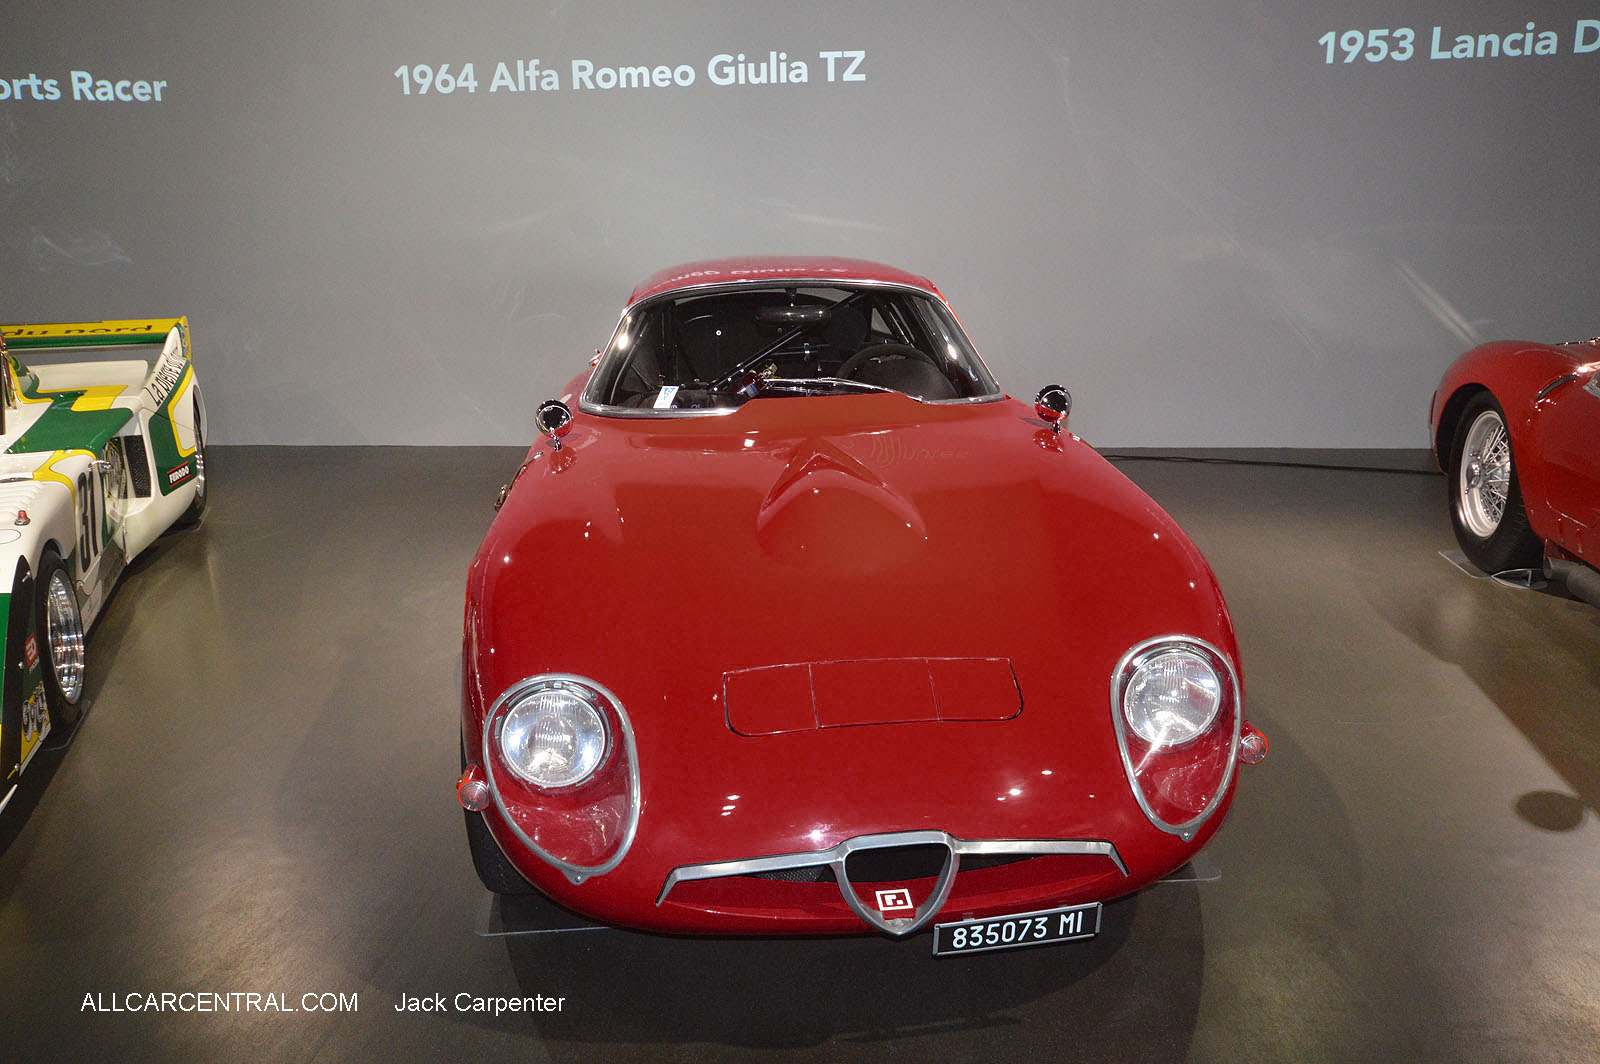 Alfa Romeo Giulia TZ 1964  Petersen Automotive Museum  2016